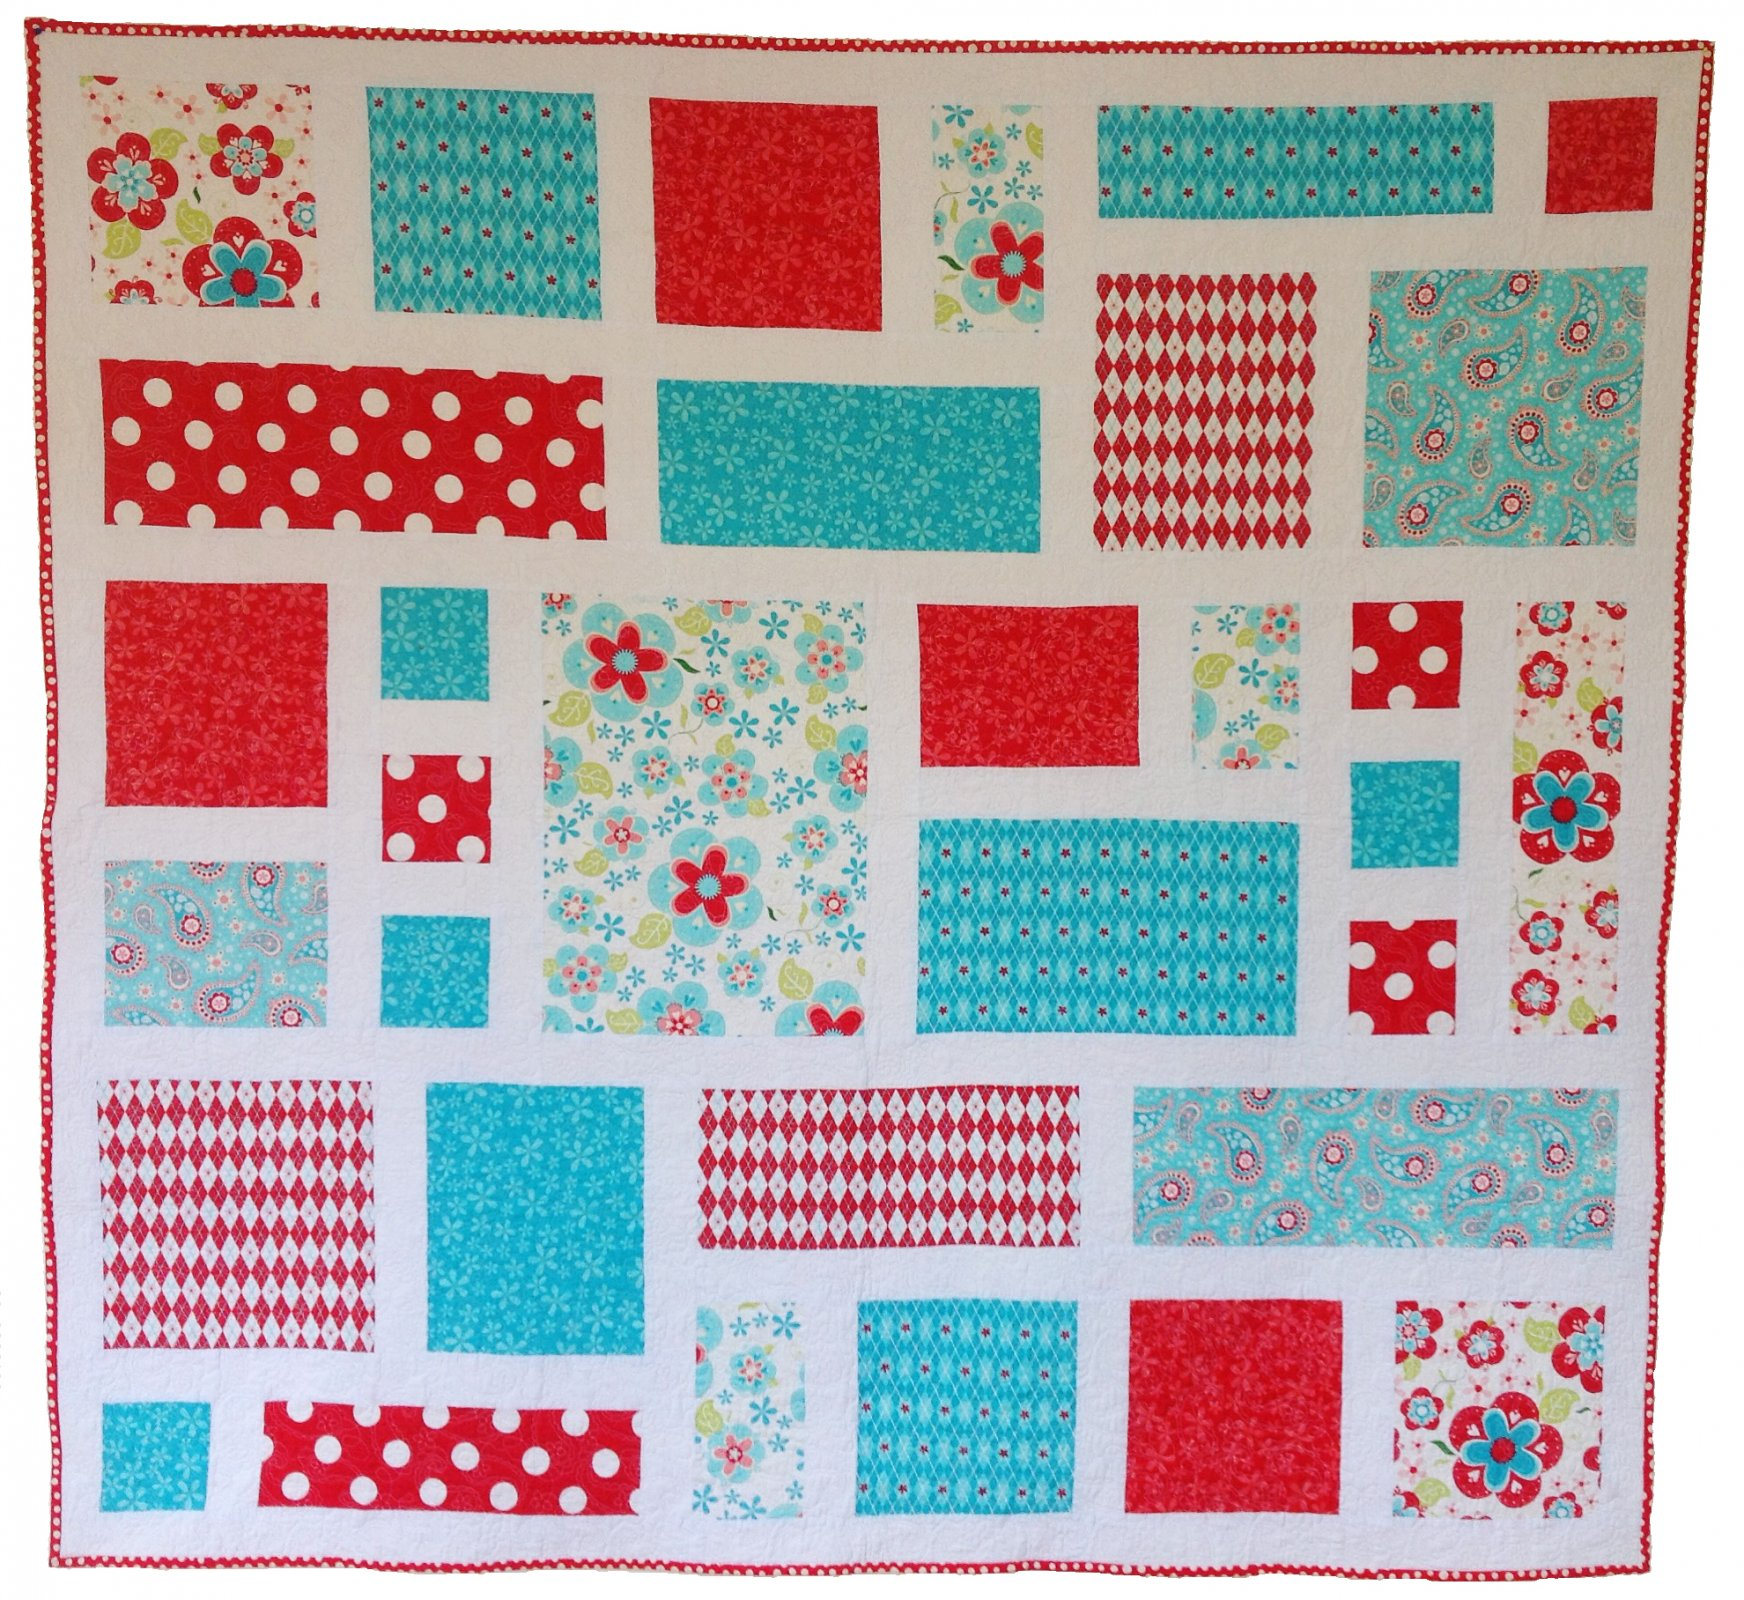 So Sweet Quilt by Clares Place